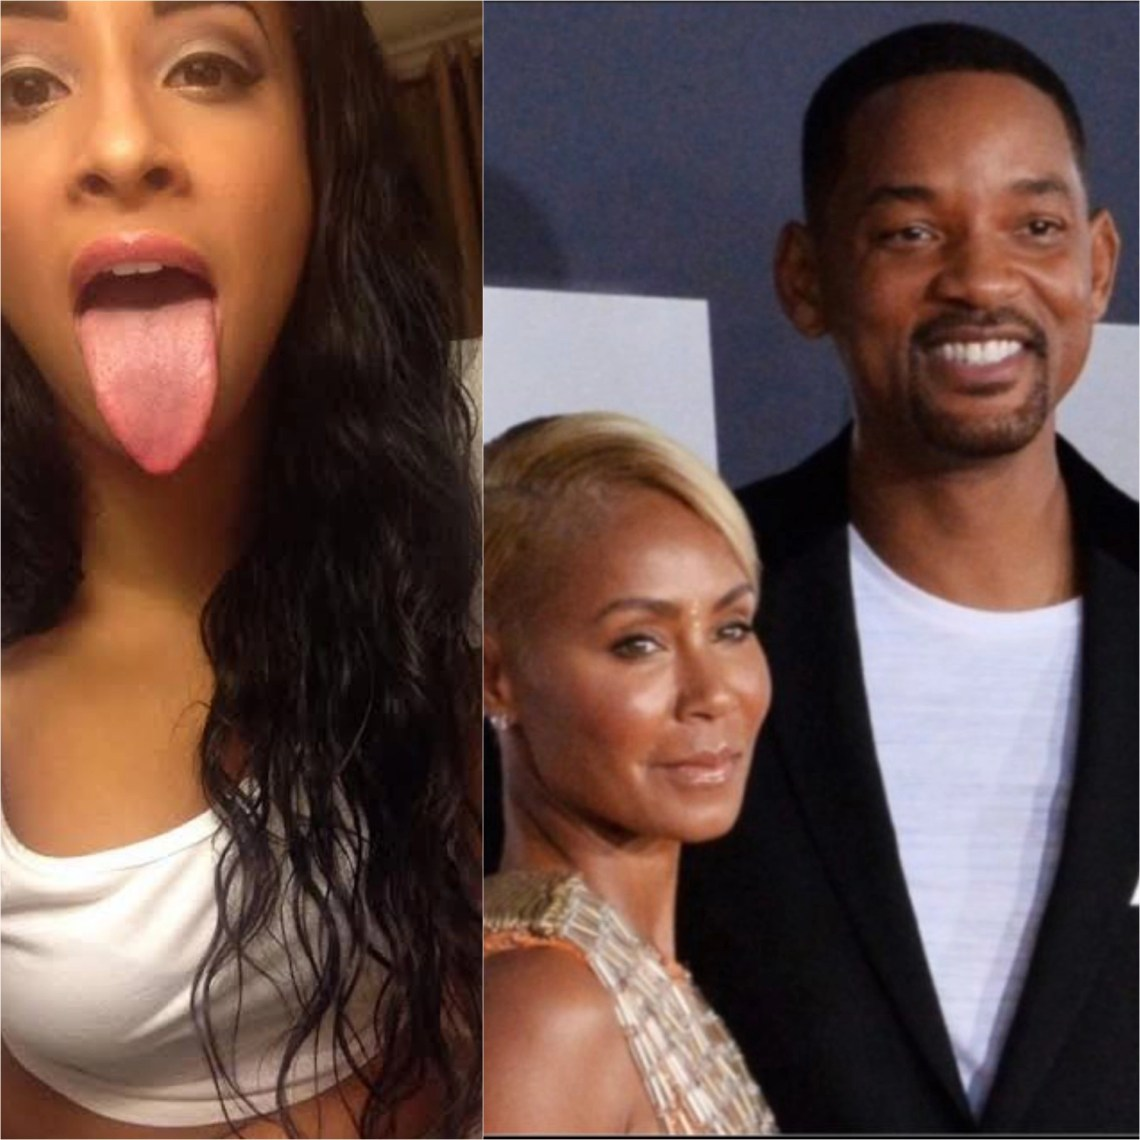 If Will Smith wants to get back at Jada, I